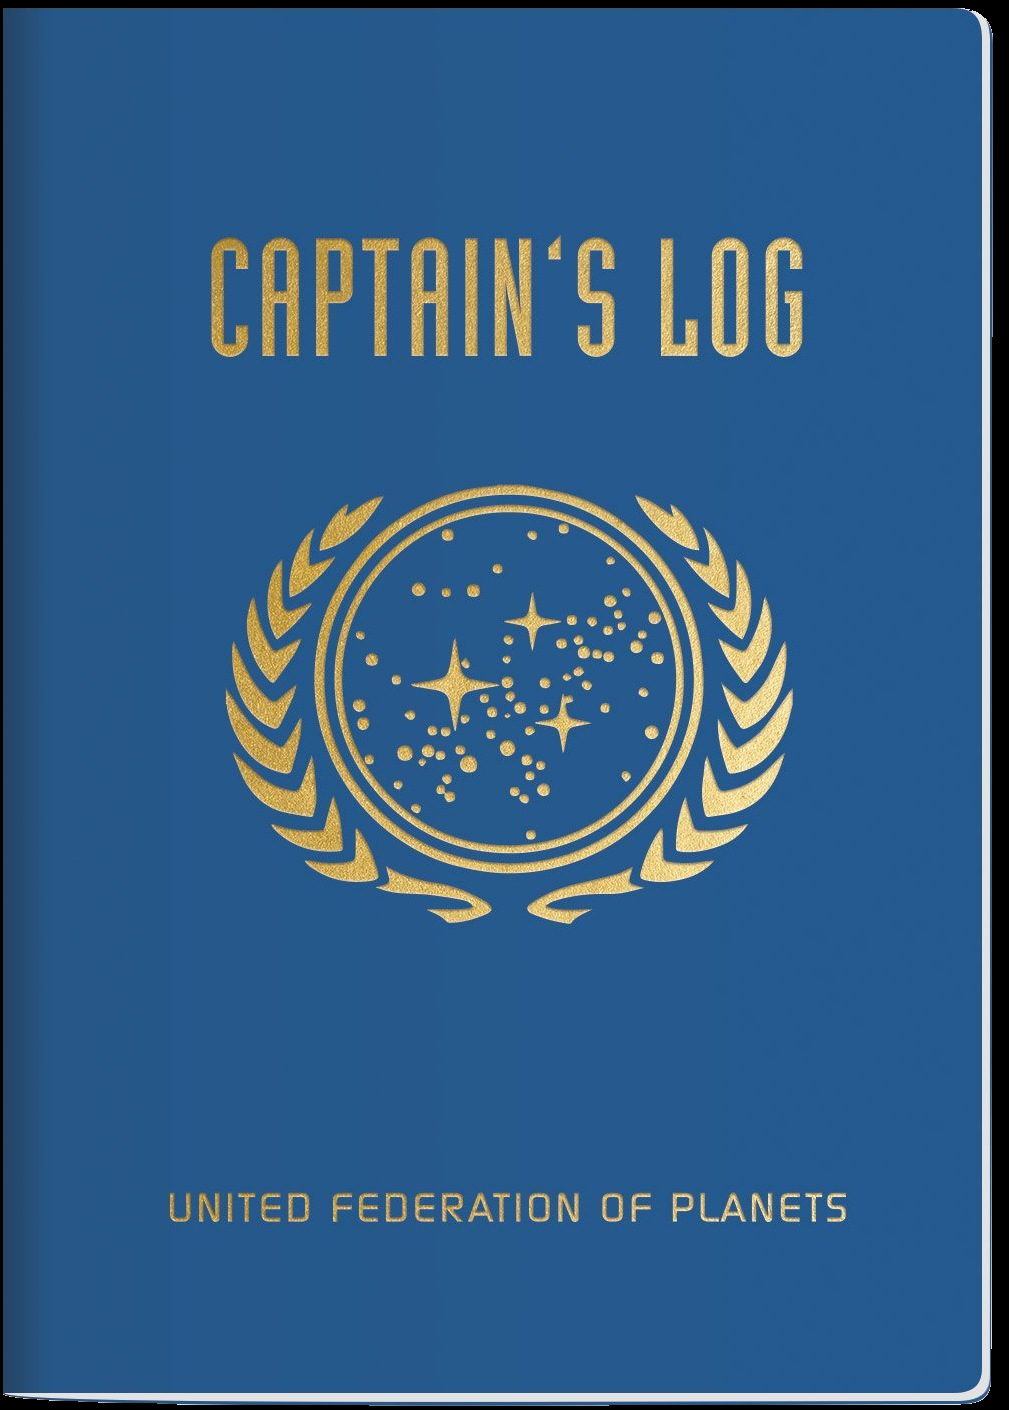 Captain's Log cover.png